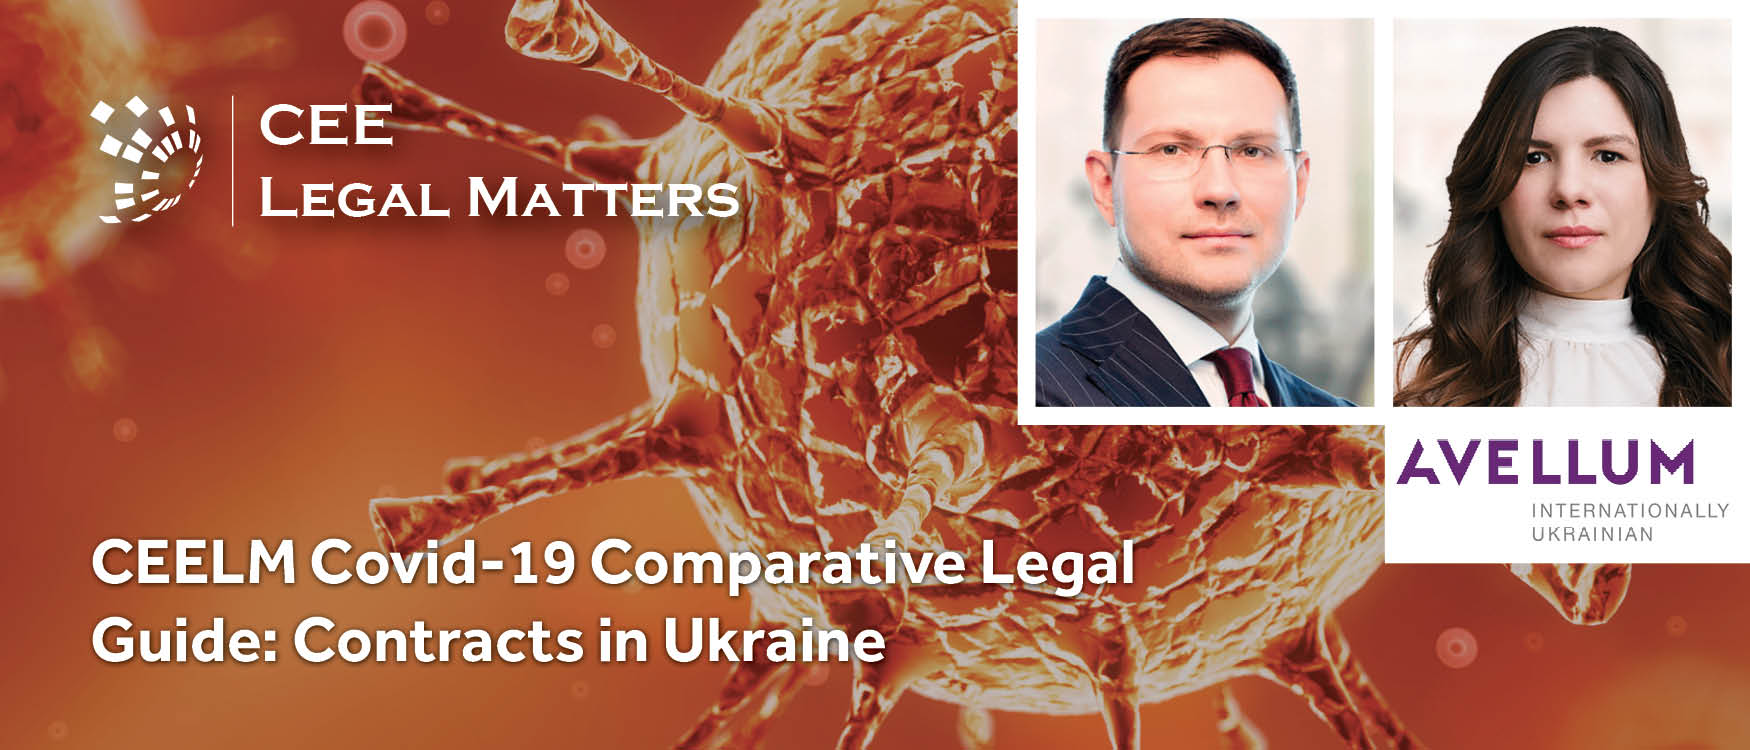 CEELM Covid-19 Comparative Legal Guide: Contracts in Ukraine